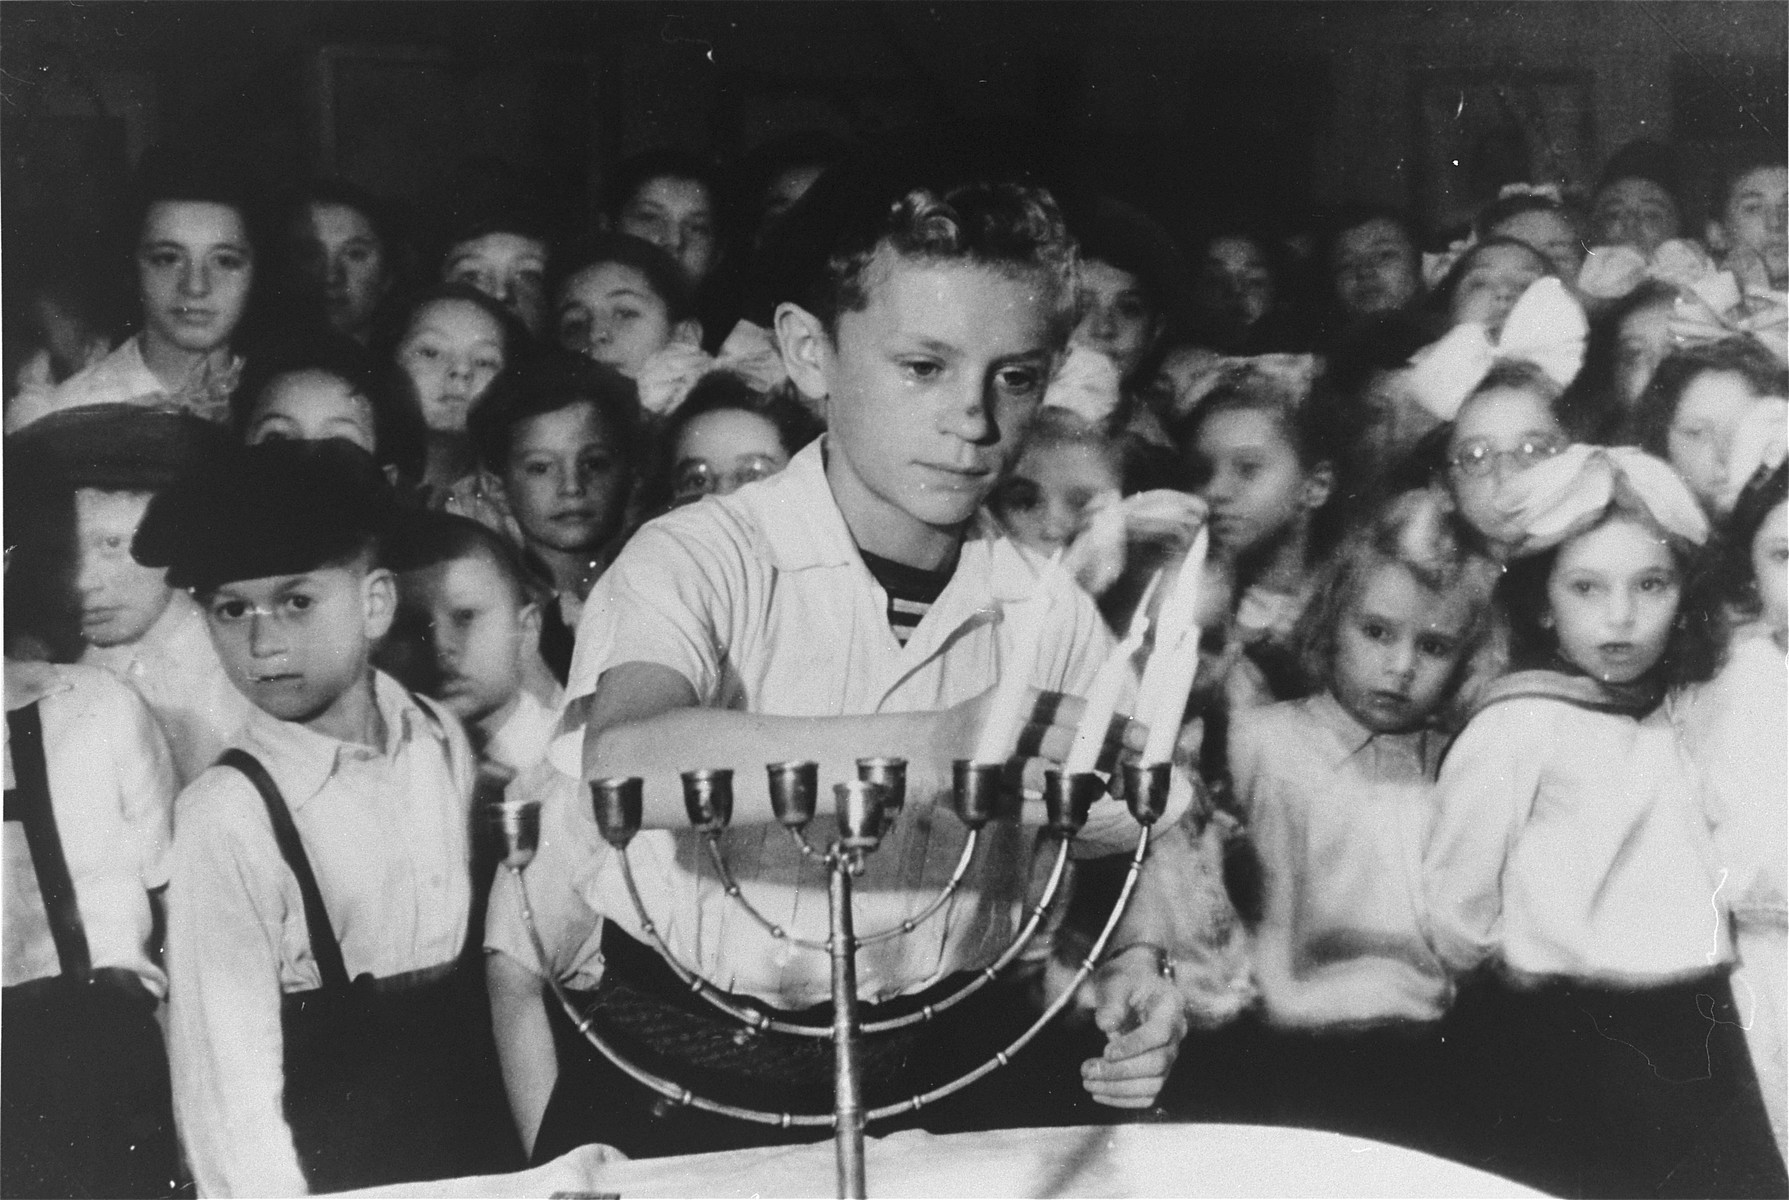 Szlomo Waks, the prize singer of the Children's Center School, lights a Hannukah menorah during a holiday celebration in the Zeilsheim displaced persons' camp.